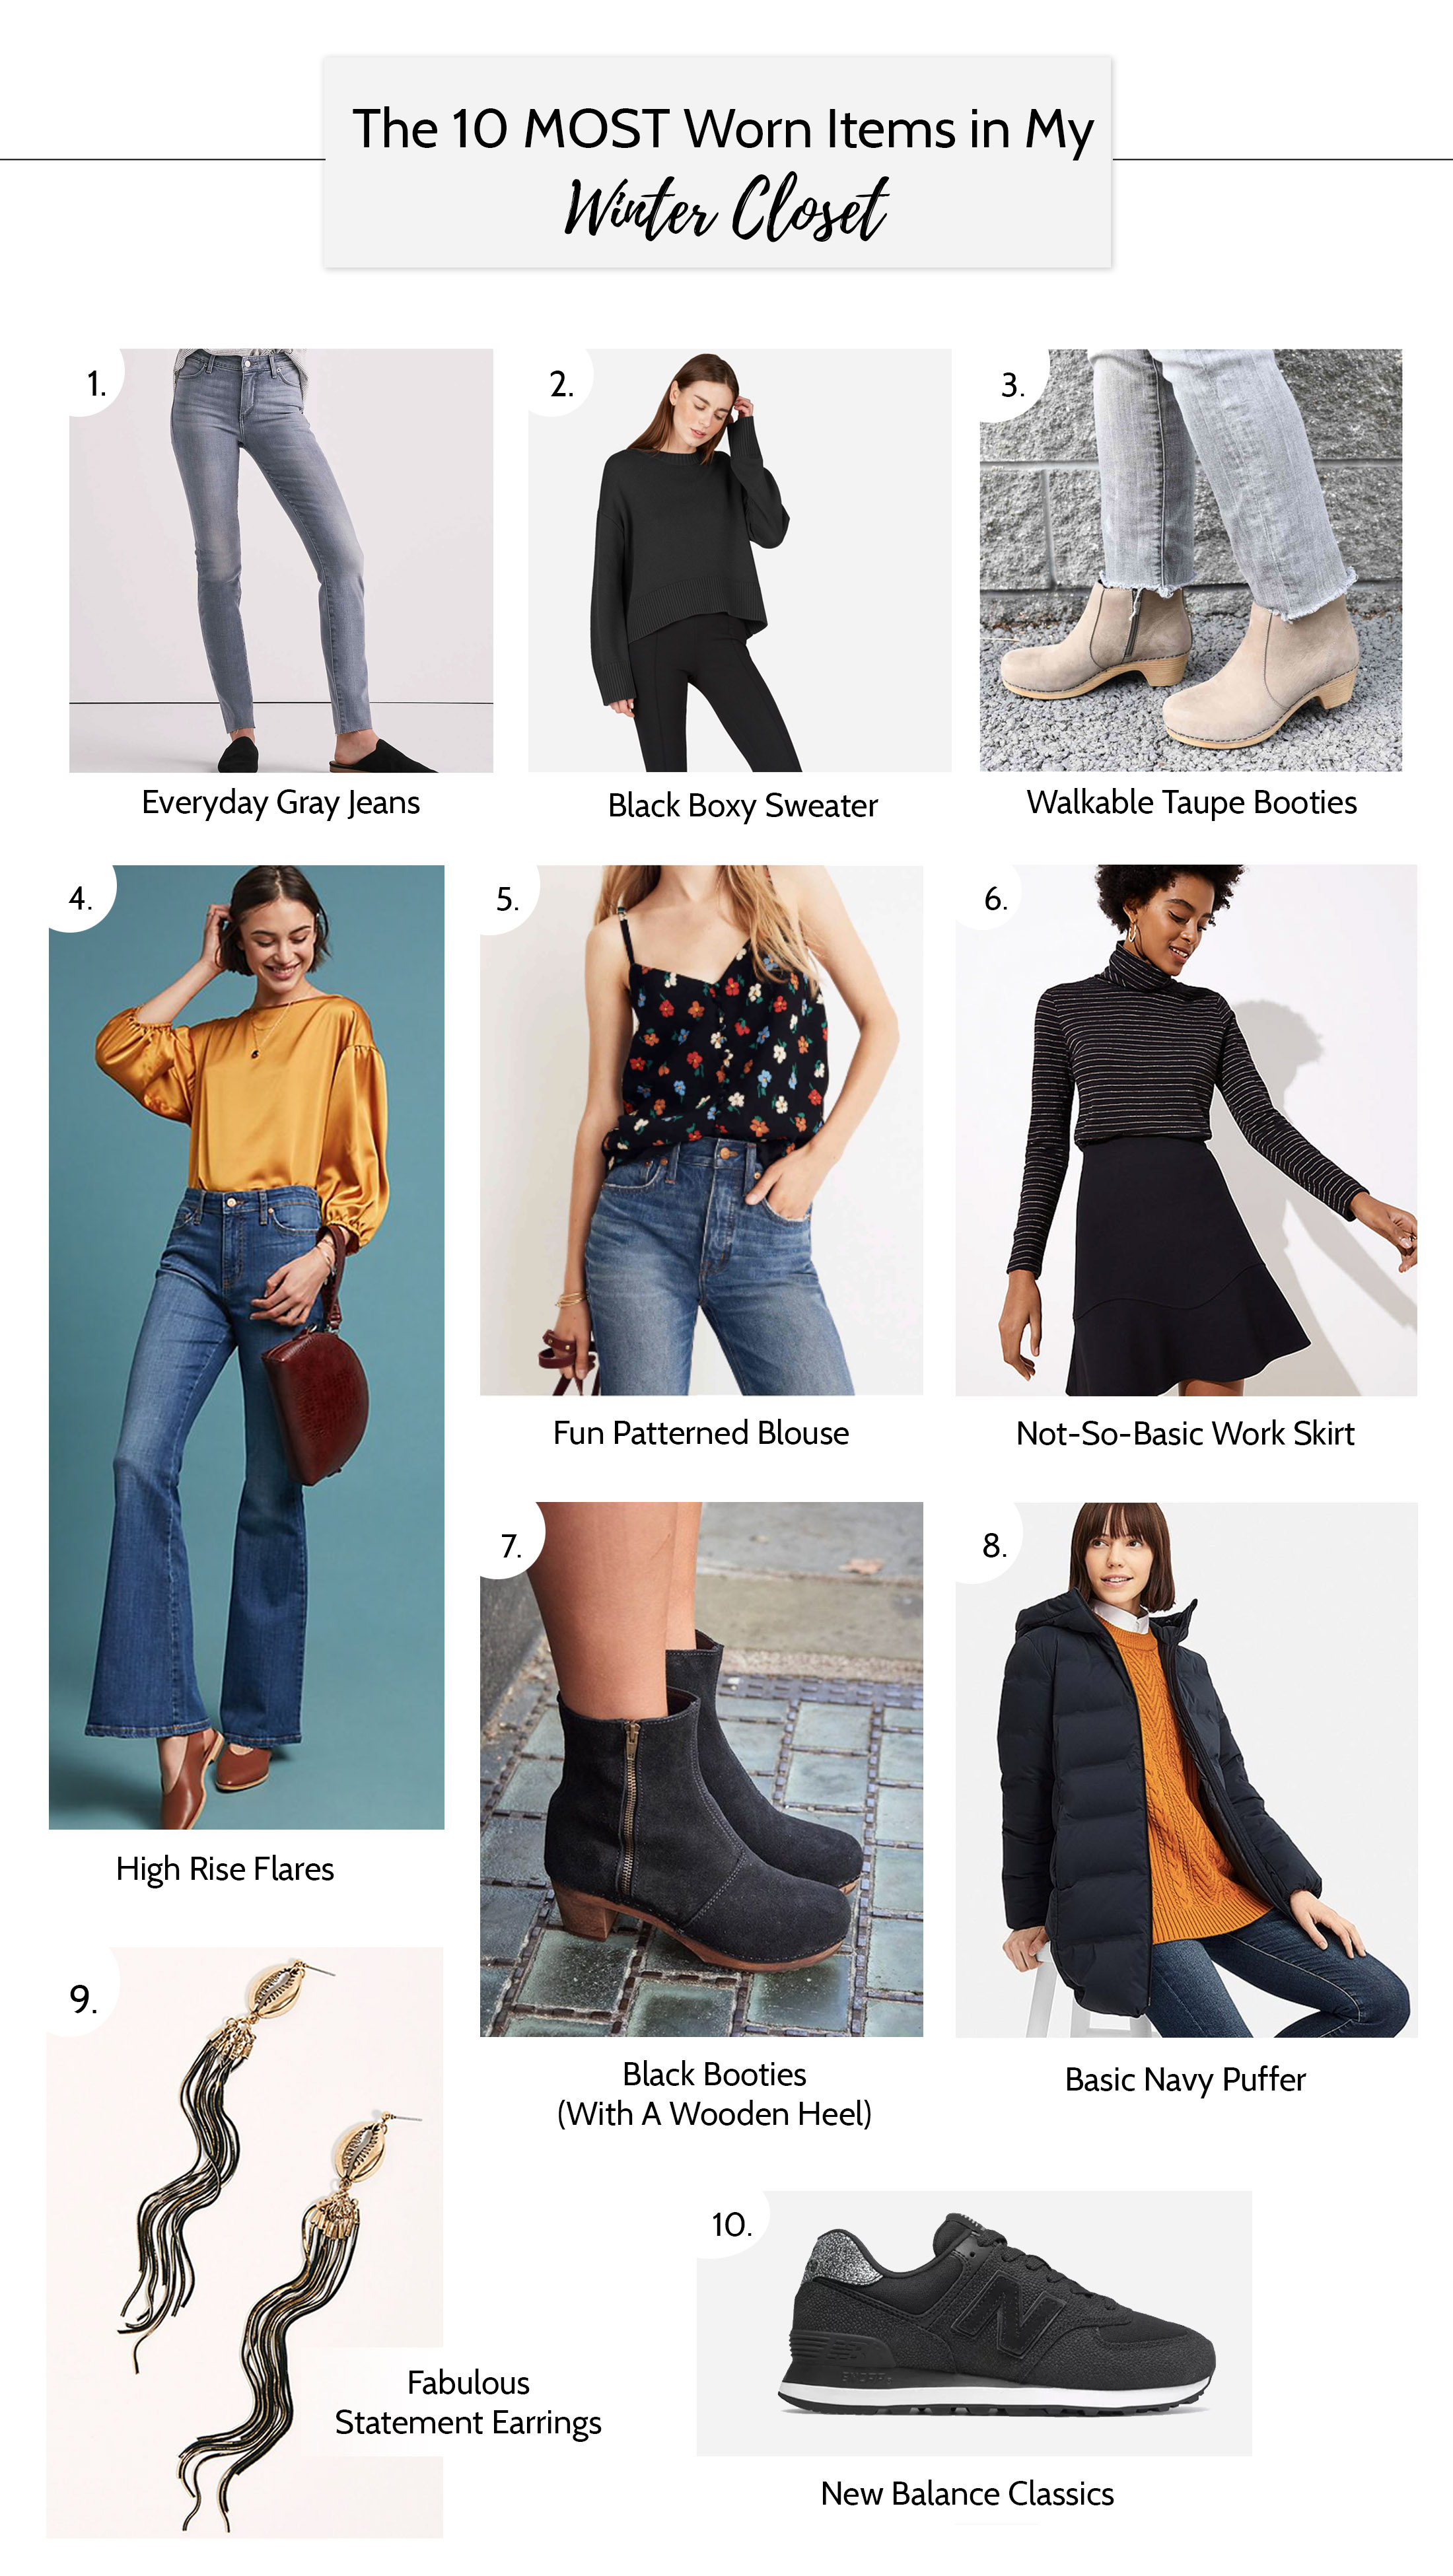 Some wardrobe pieces are just SO, that we wear 'em on repeat, whether they're favs or not. Peep these outfit-making staples — my daily go-tos right now.